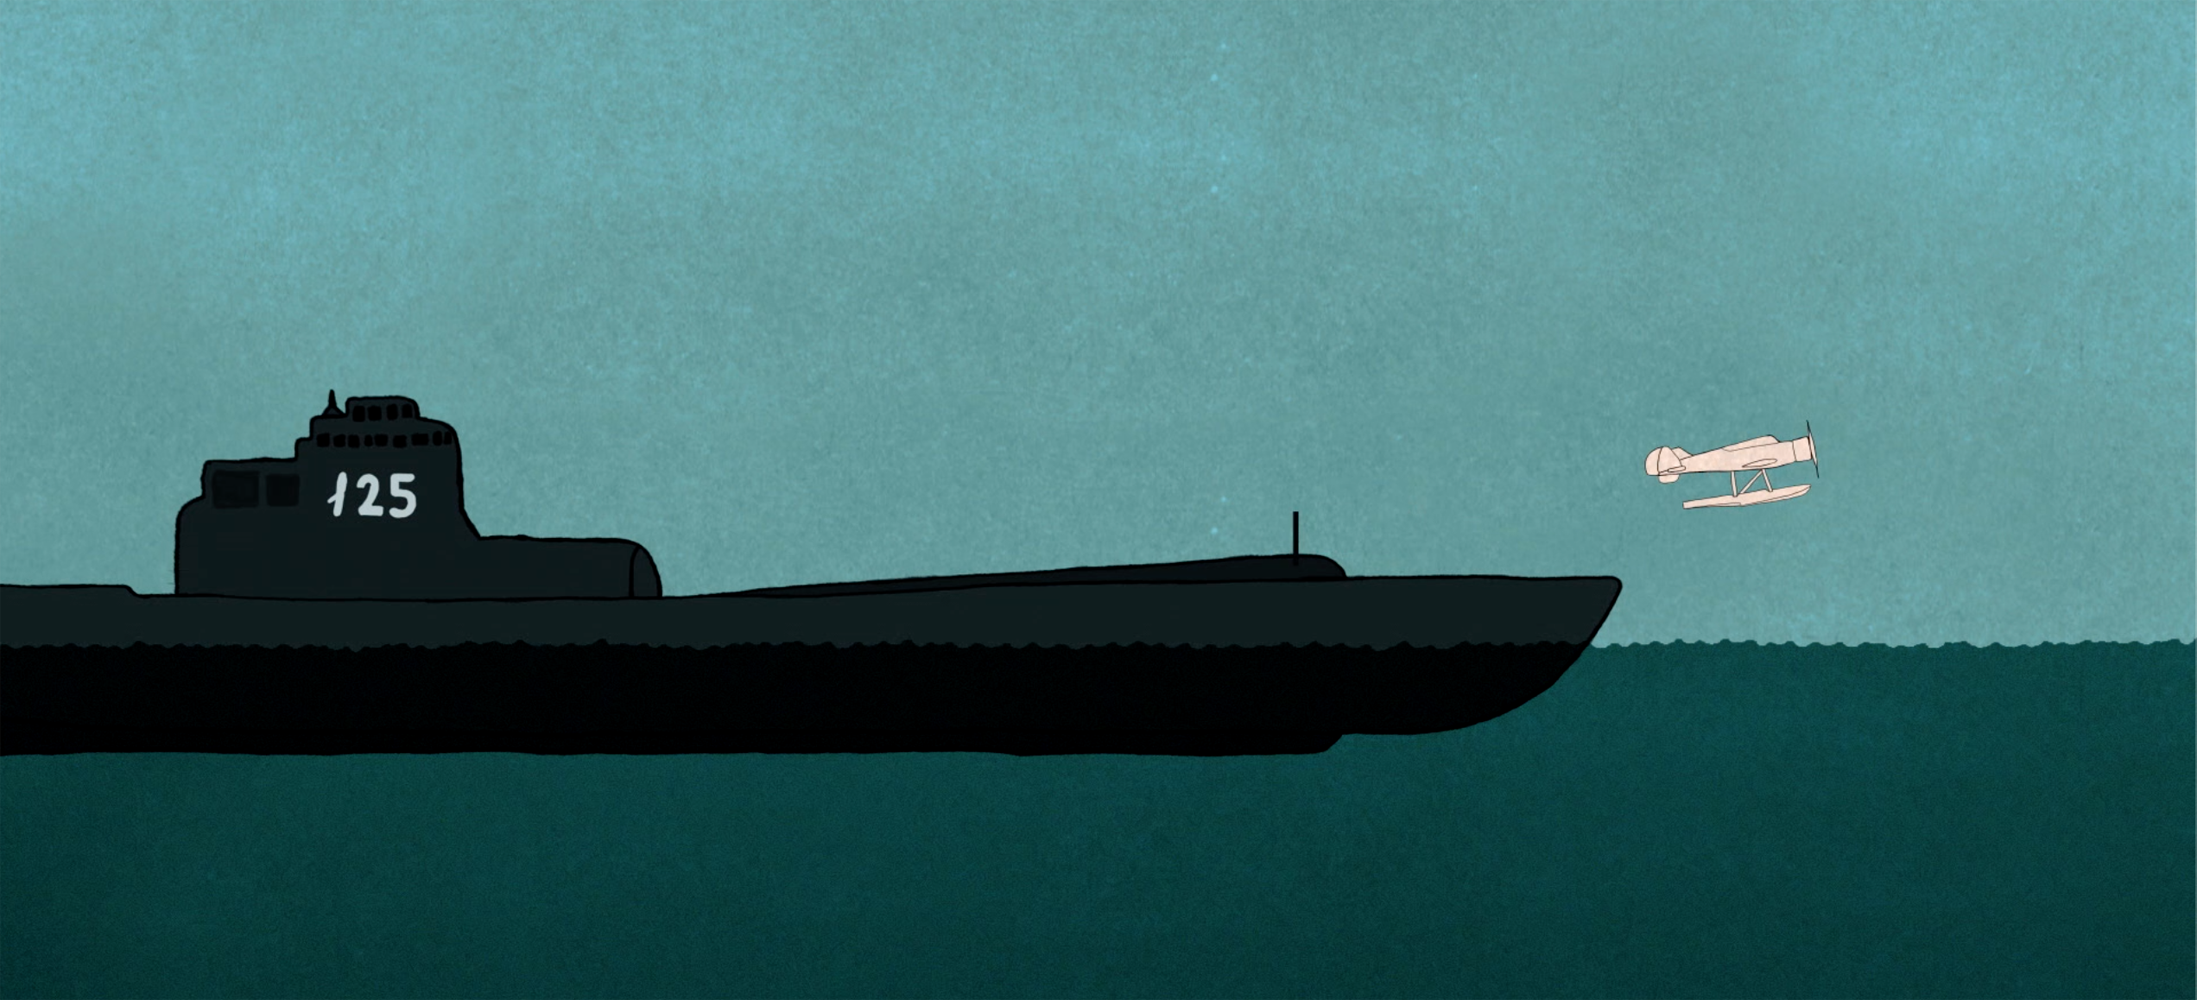 Animated Still:  Plane launch from submarine  (Animation by Zak Margolis)